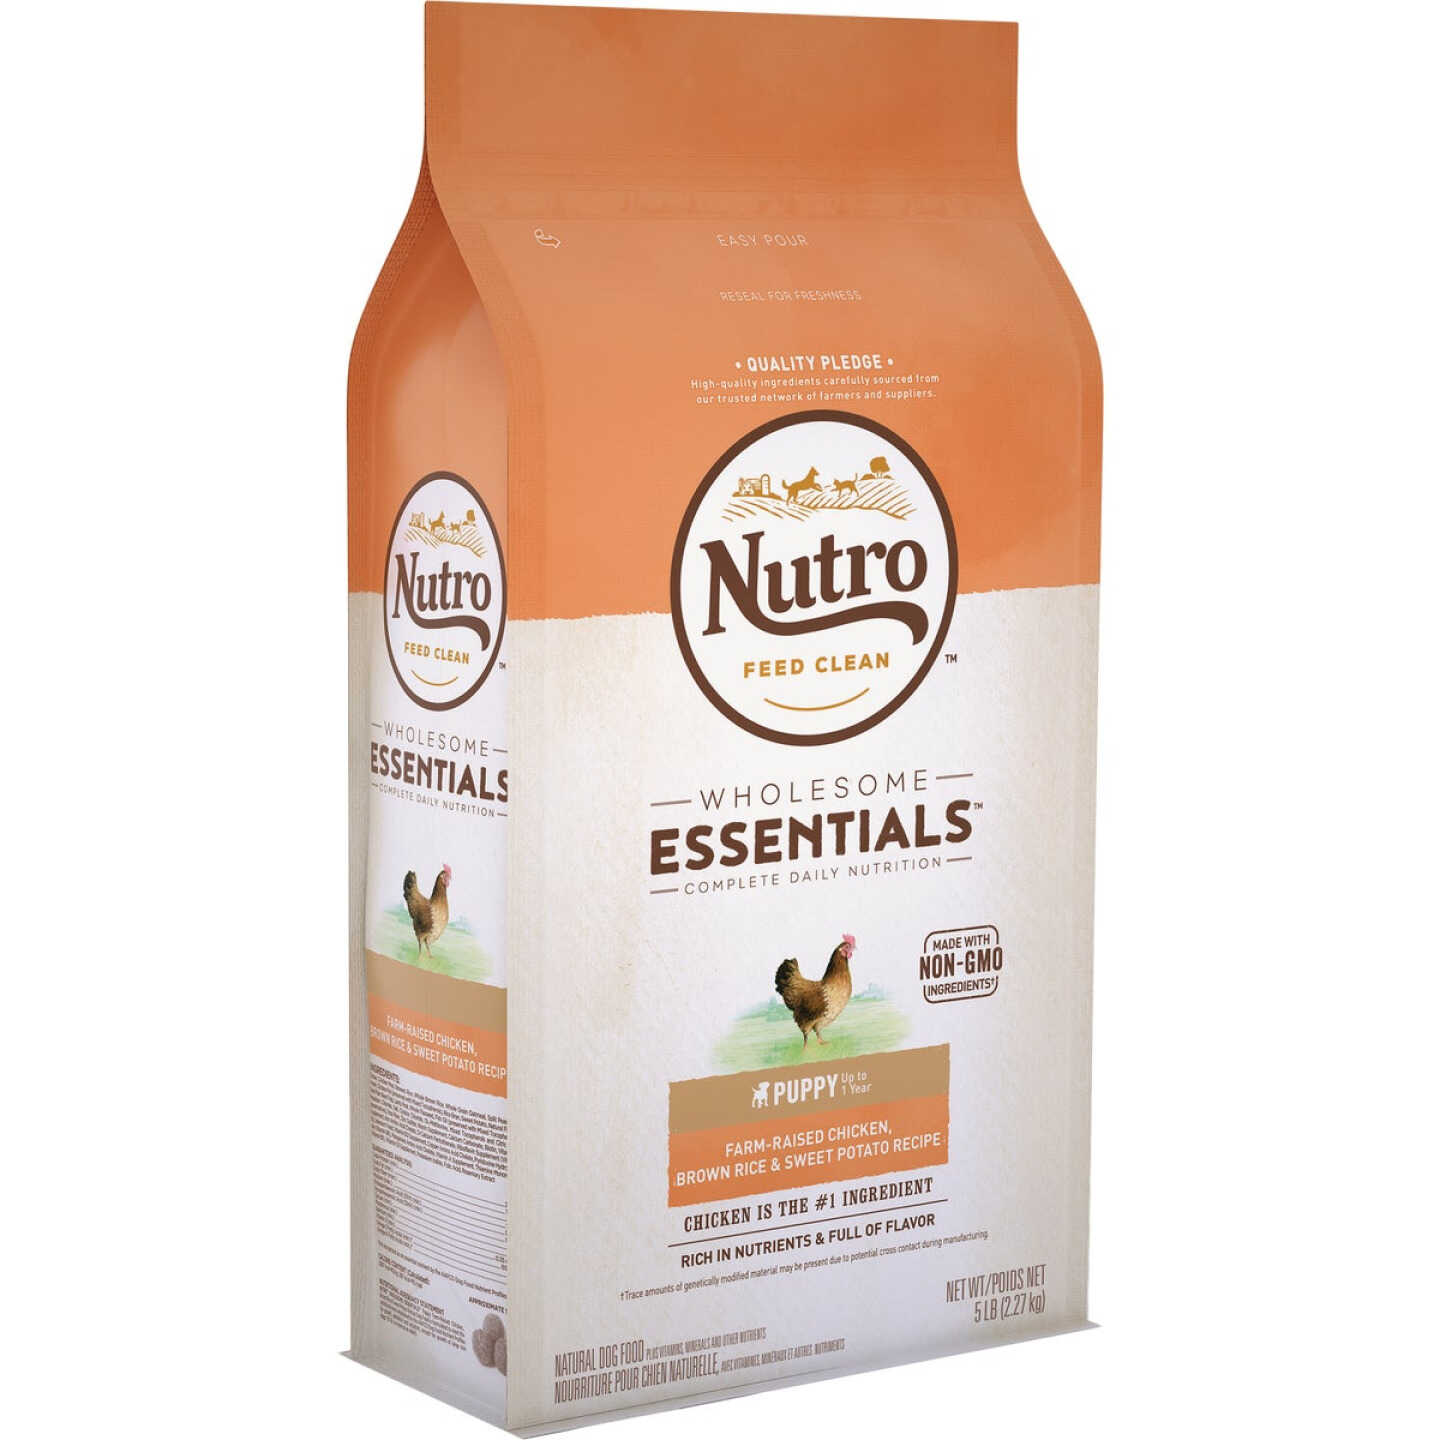 Nutro Wholesome Essentials 5 Lb. Chicken, Brown Rice, & Sweet Potato Dry Puppy Food Image 1